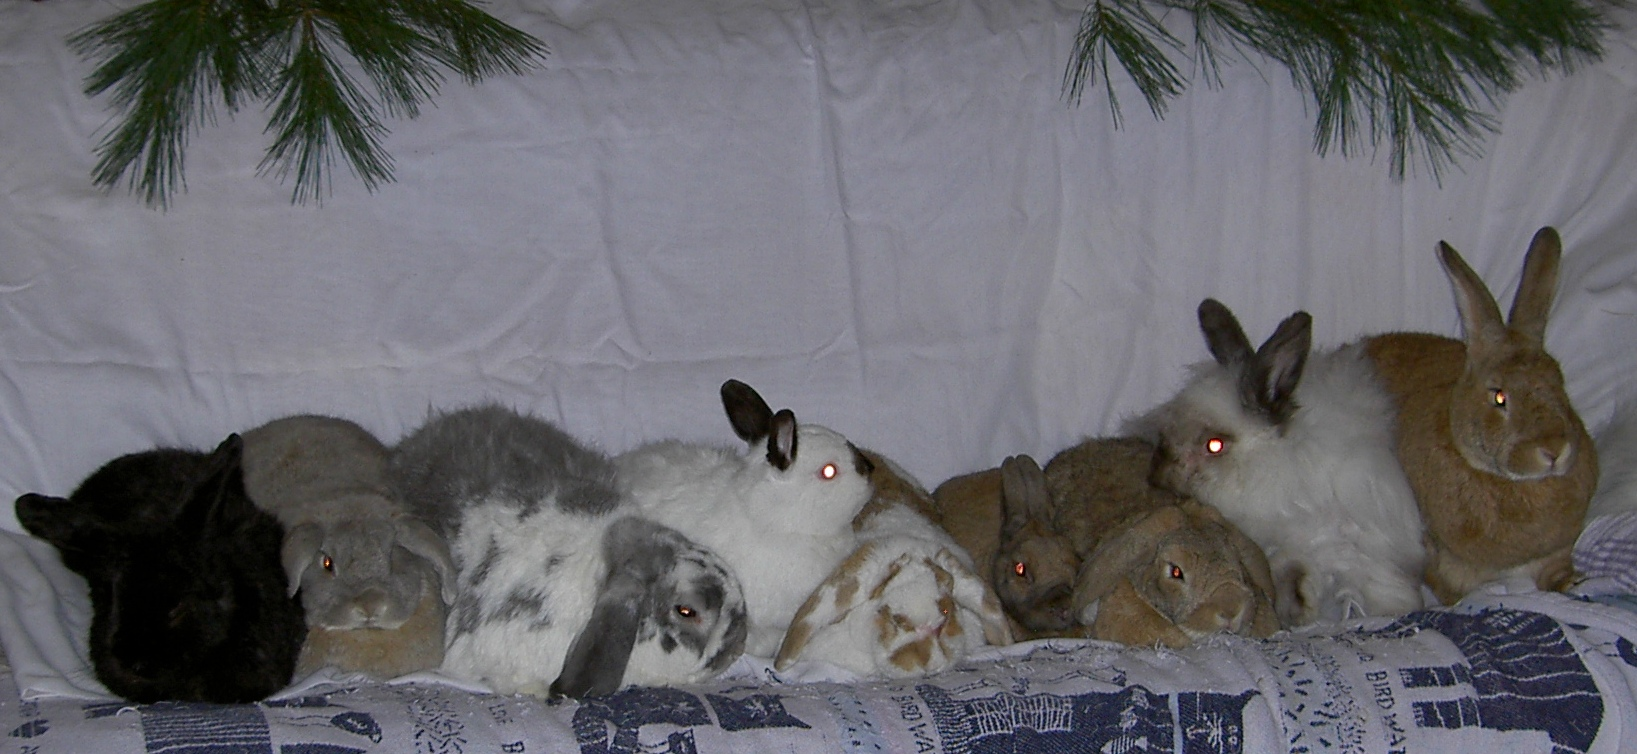 [ The bunnies, Yuletide 2005 ]